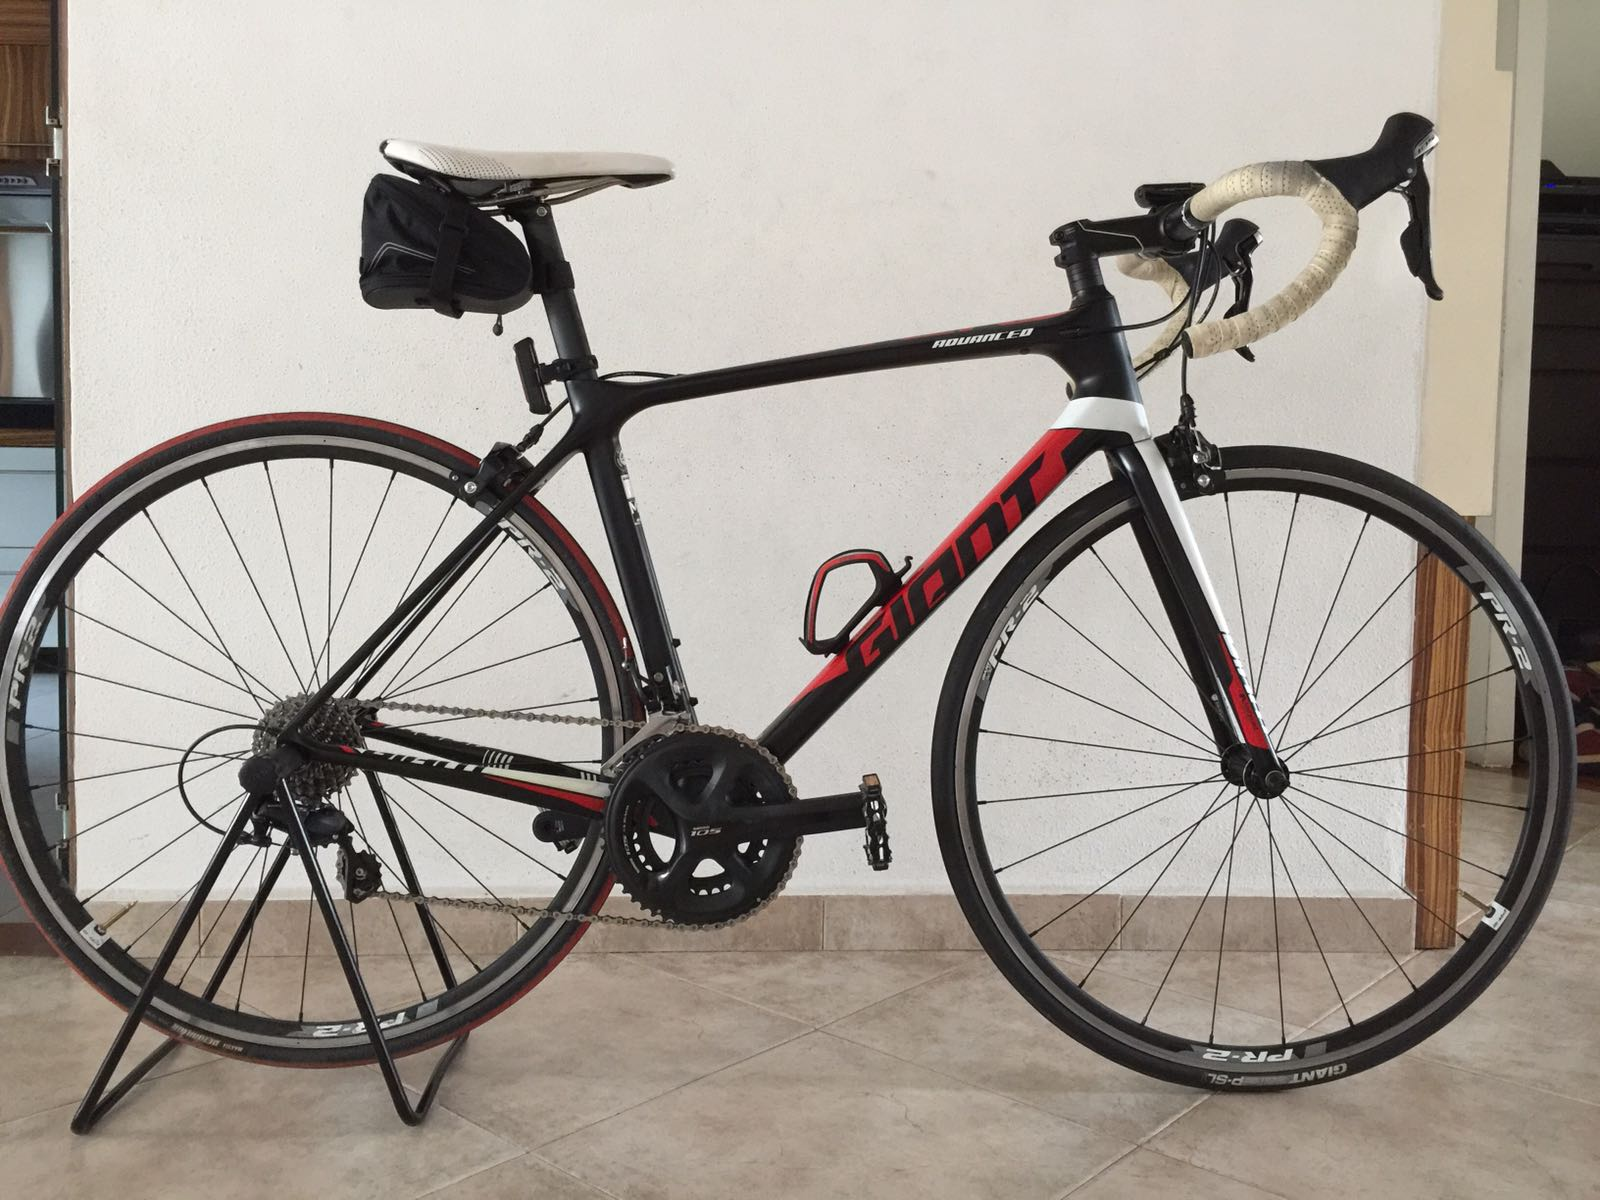 ca9094e5414 Giant TCR Advance 2 2016, Bicycles & PMDs, Bicycles on Carousell